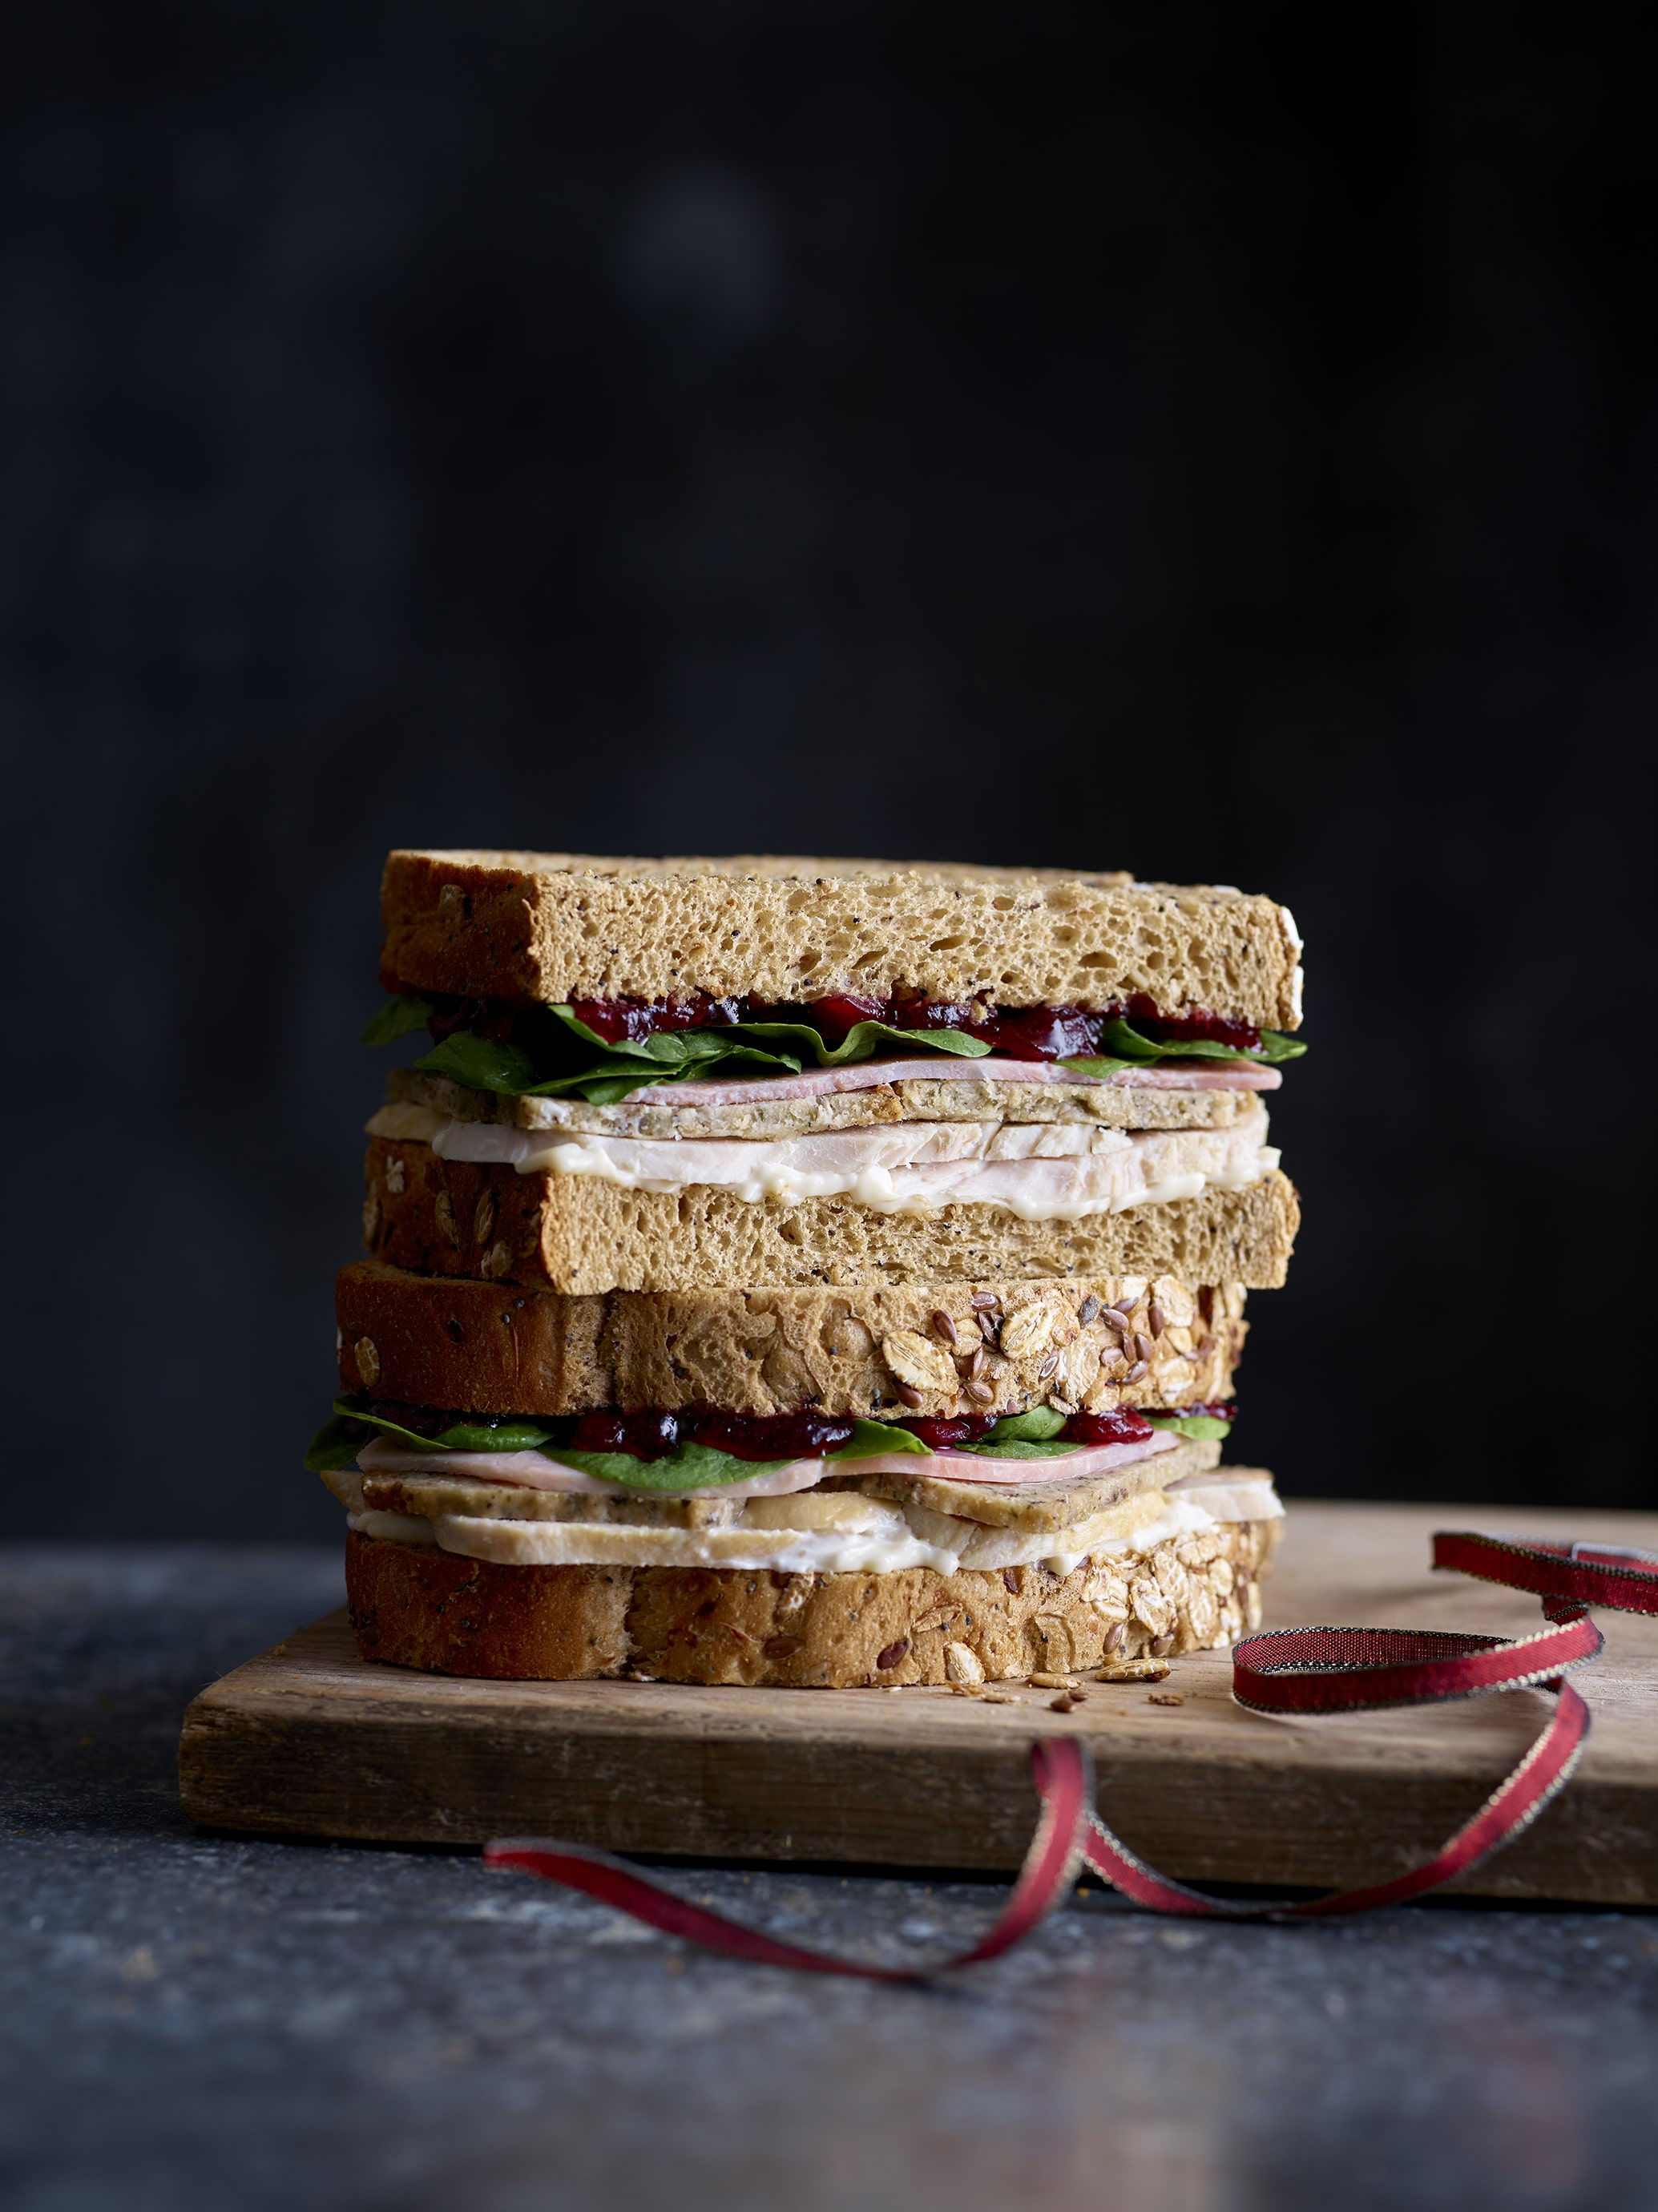 CHRISTMAS DINNER ON SEEDED BREAD - EAT have secured another spot with their festive full works bloomer! This sandwich includes butter basted turkey, sage and onion stuffing, some savoury smokiness, cranberry sauce and mayo for some extra moisture sandwiched between lovely seeded bread. This has scored highly across The Mirror with a 4, Daily Mail with a 5 and also in iNews with a 4.1 overall as the turkey scored 4 out of 5, the extras scored 4 out of 5 and bread got a 5 out of 5.*Image used is by EAT, please click here to go to EAT's website.